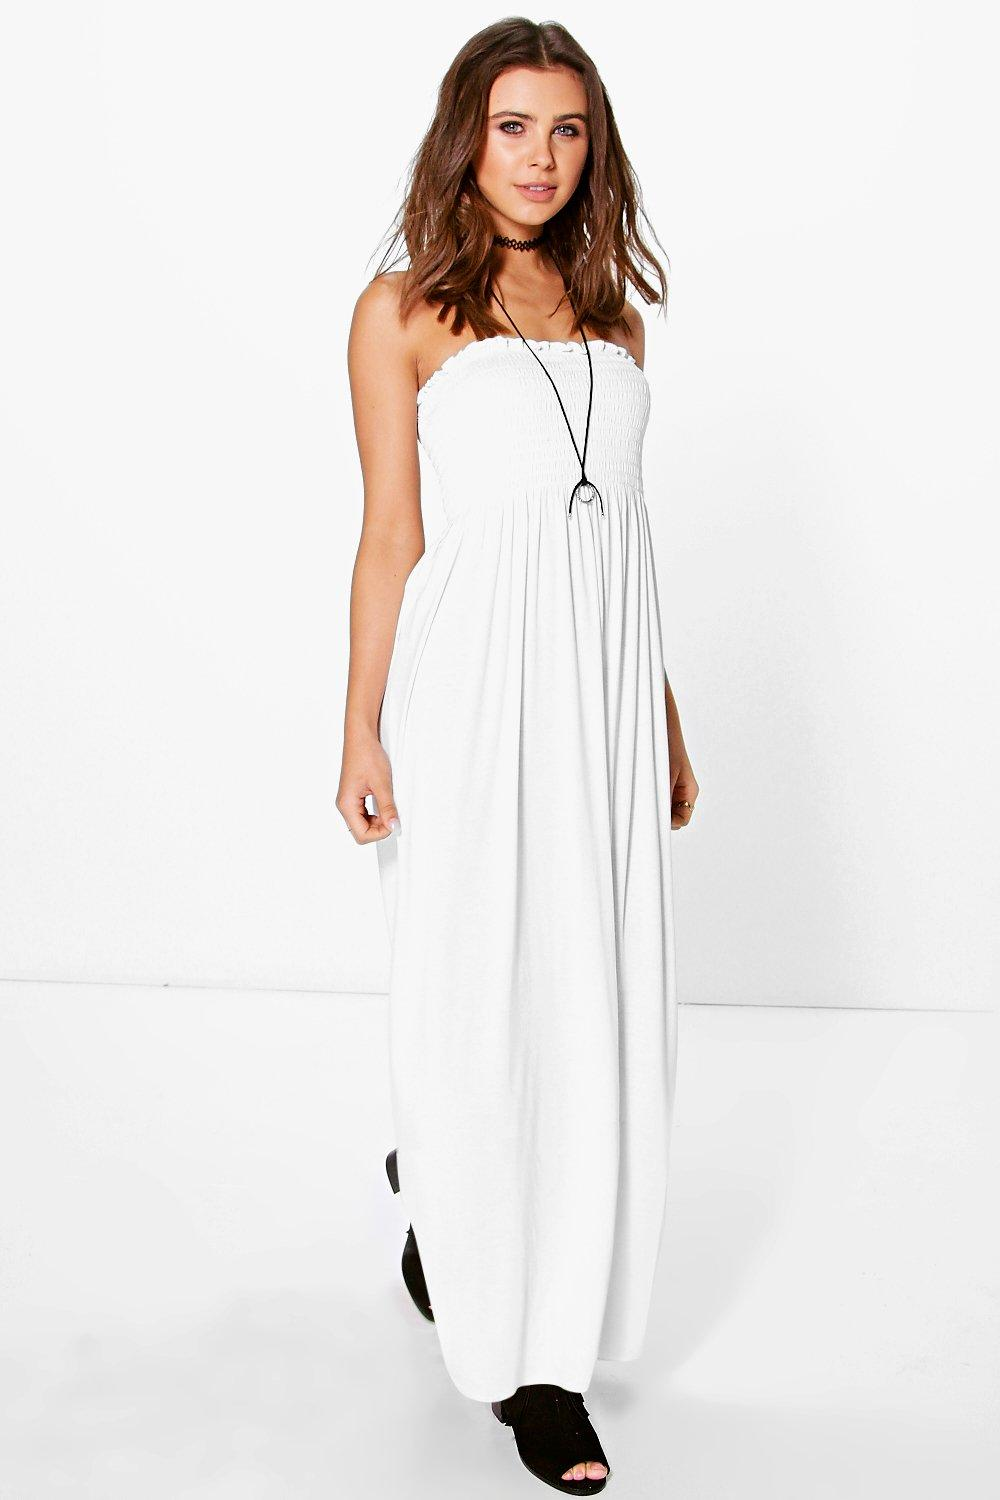 Shirred maxi dress australia